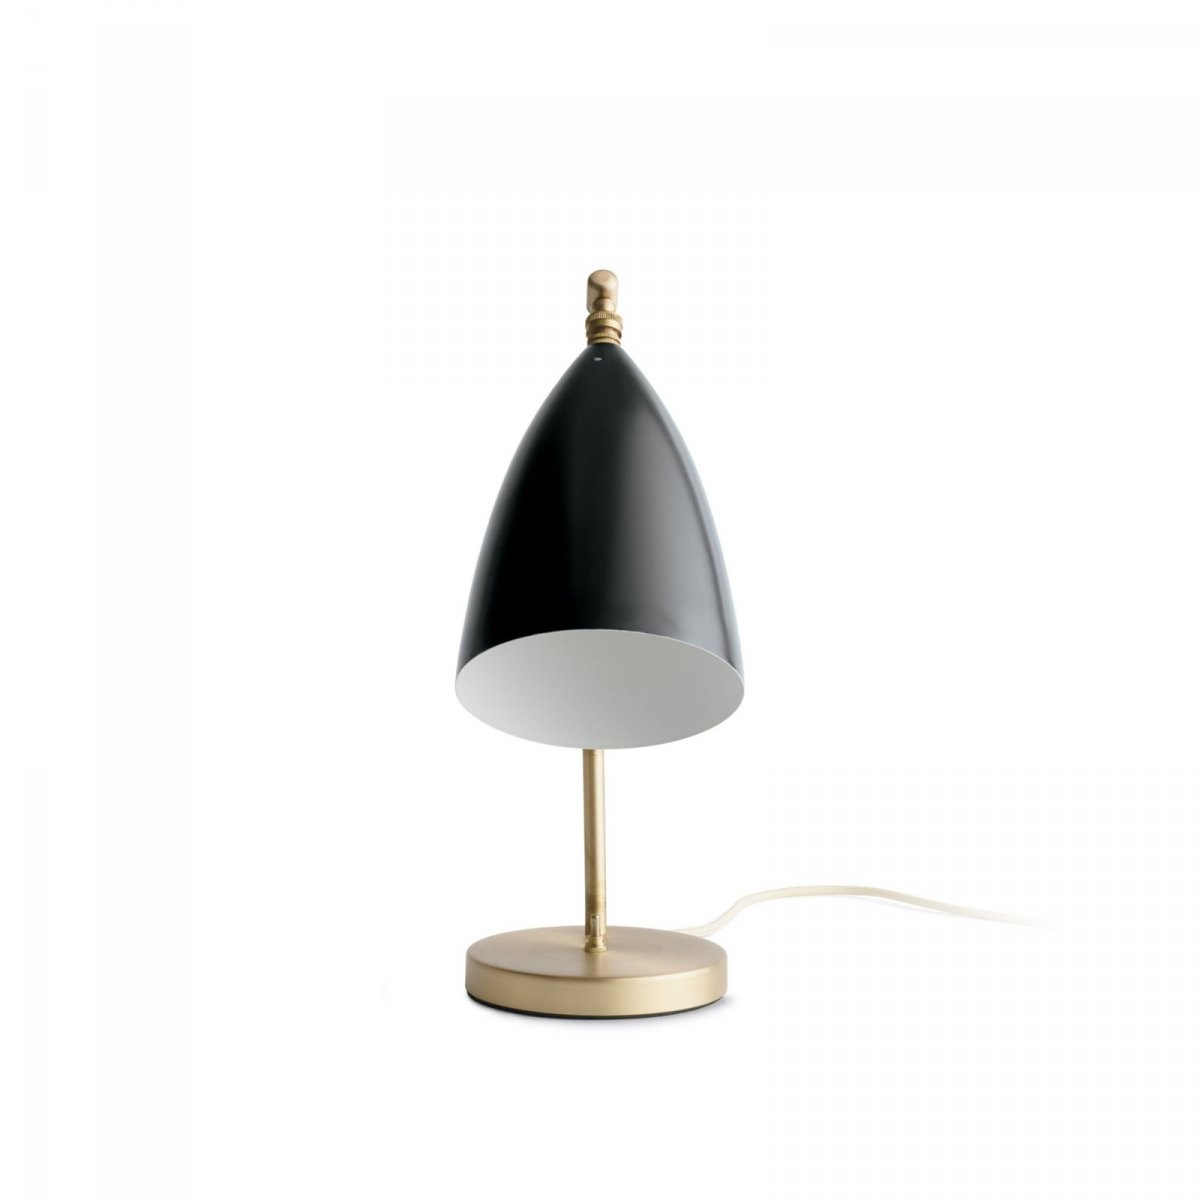 Grossman Gräshoppa Task Table Lamp, jet black, front view.